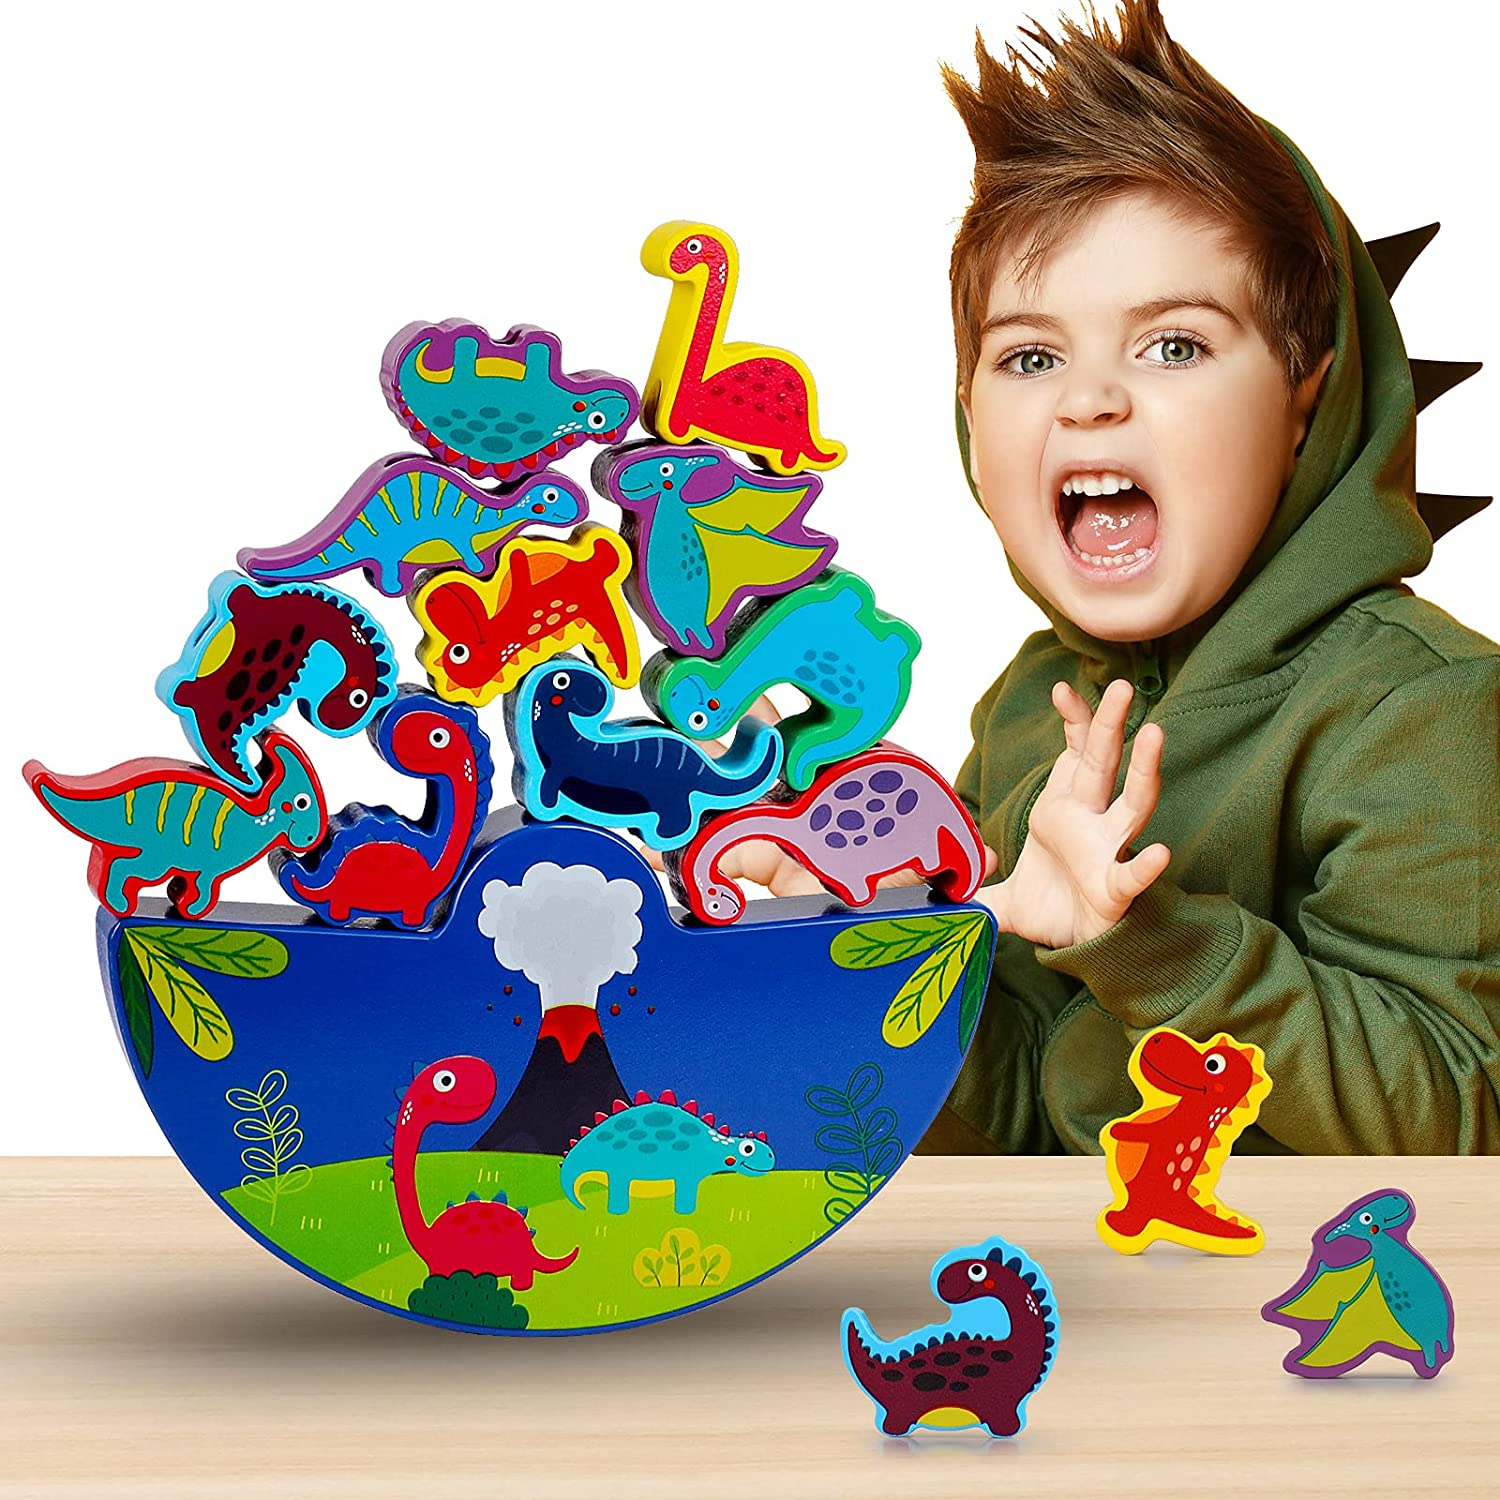 Boys Toys Age 3-8, Dinosaur Stacking Toy for Kids Wooden Puzzle for Boys Girls Kids Cool Toys for 3-8 Year Old Girls Gifts for 3-8 Year Old Boys Party Birthday Gifts Toys for Girls Boys Kids Toddlers